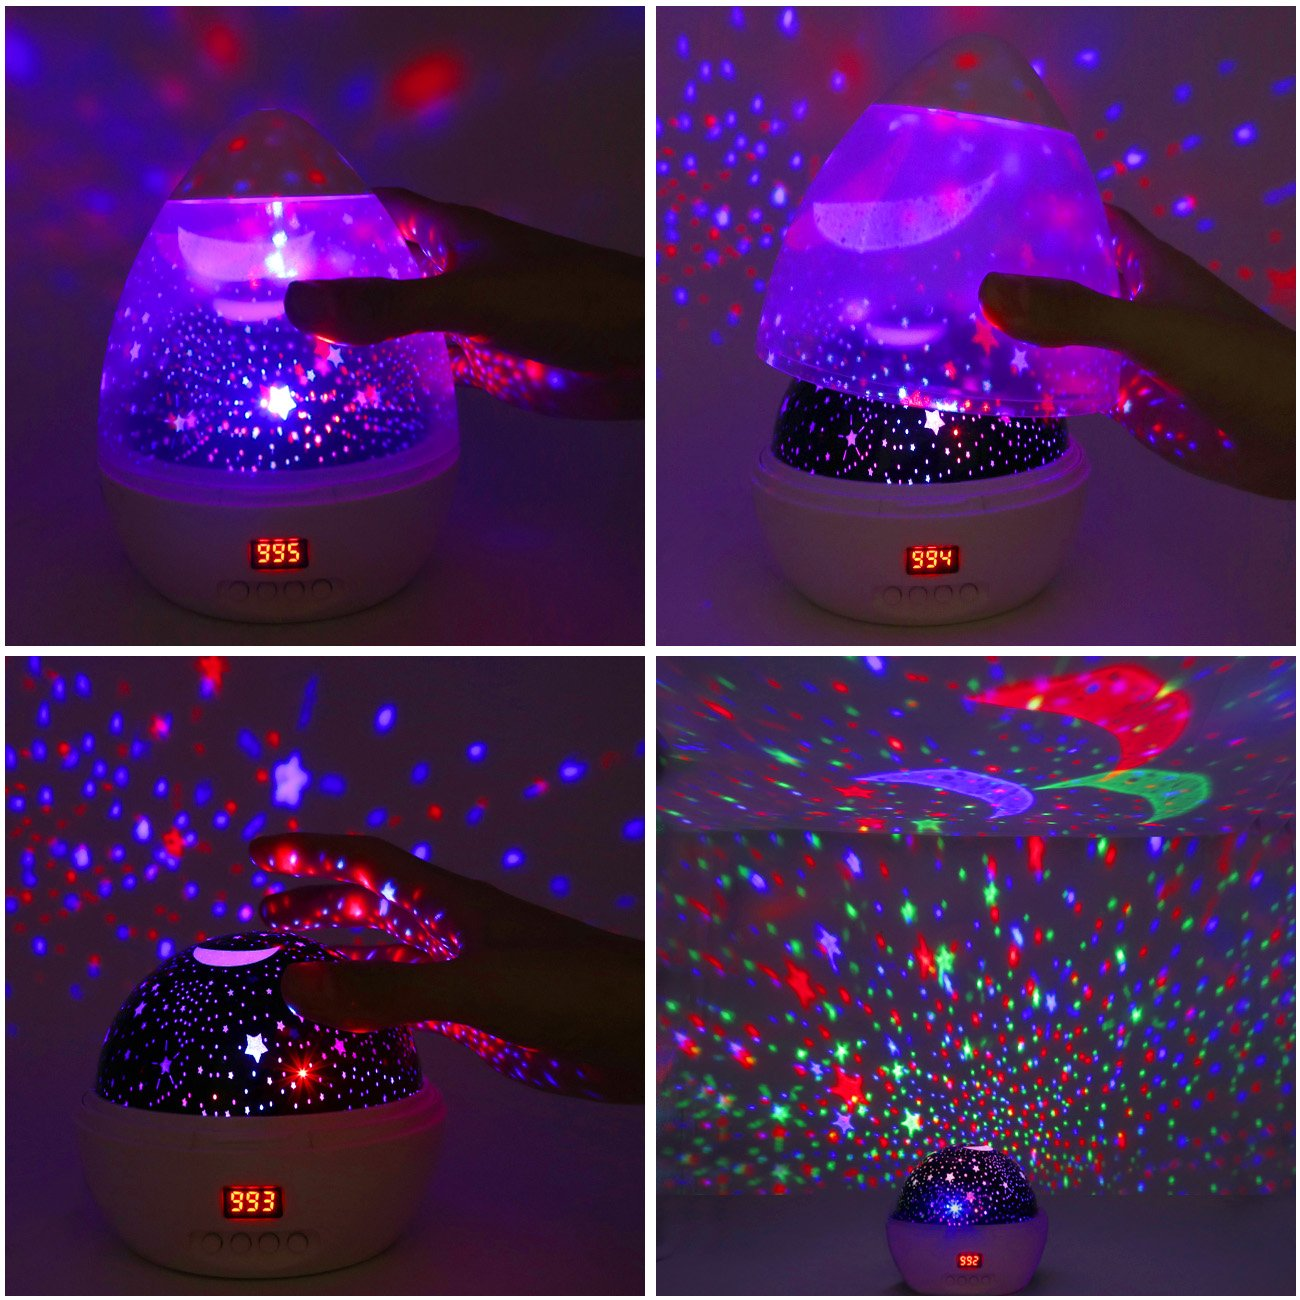 Star Sky Night Lamp,ANTEQI Baby Lights 360 Degree Romantic Room Rotating Cosmos Star Projector with LED Timer Auto-Shut Off for Kid Bedroom,Christmas Gift (White) by ANTEQI (Image #2)